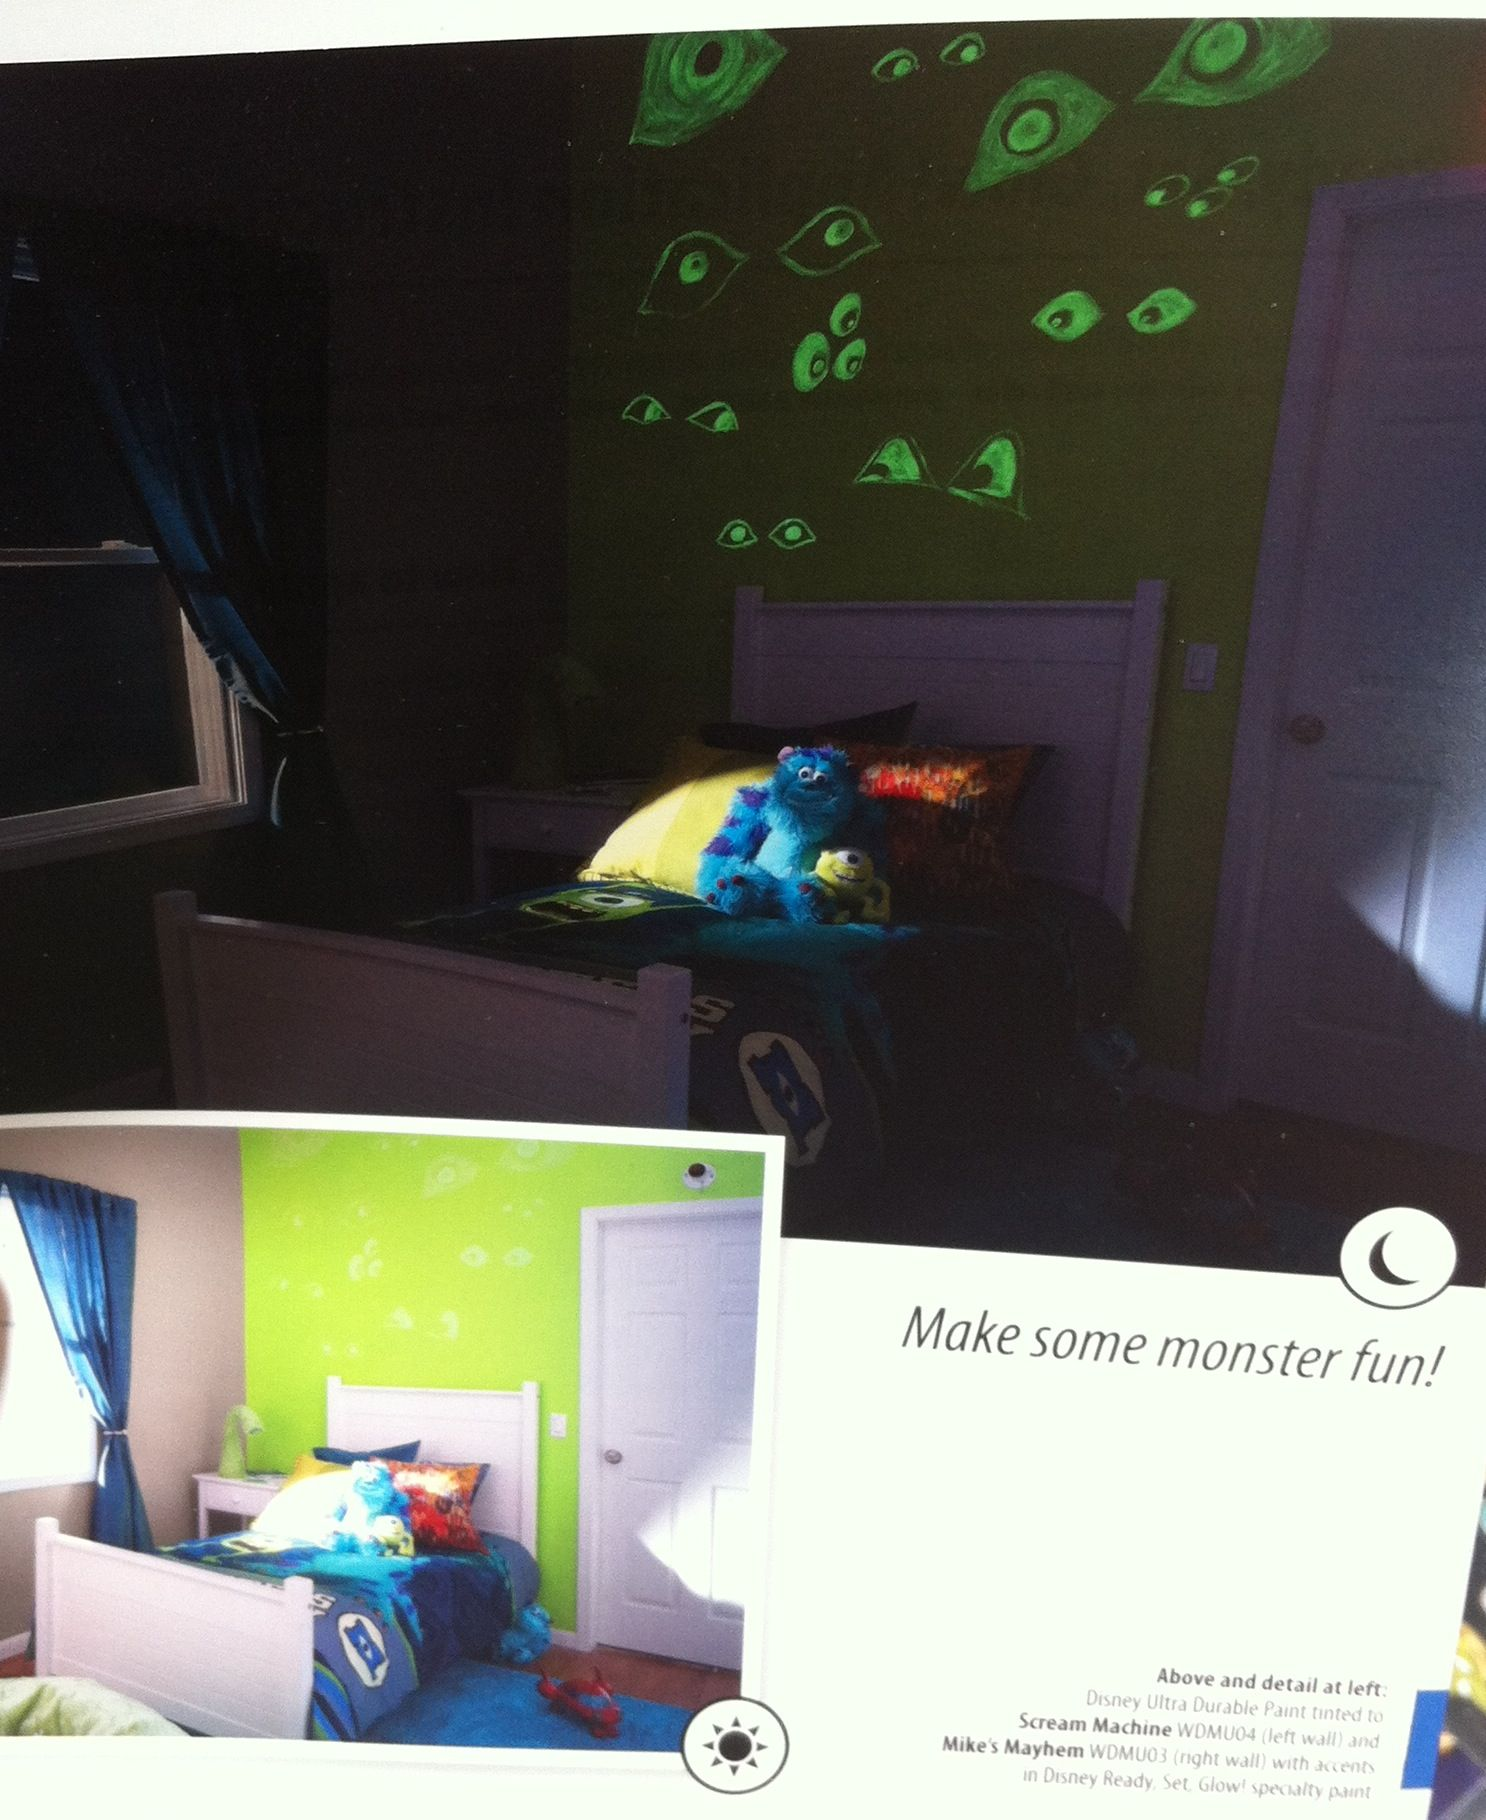 Monsters Inc Room With Glow In The Dark Paint!